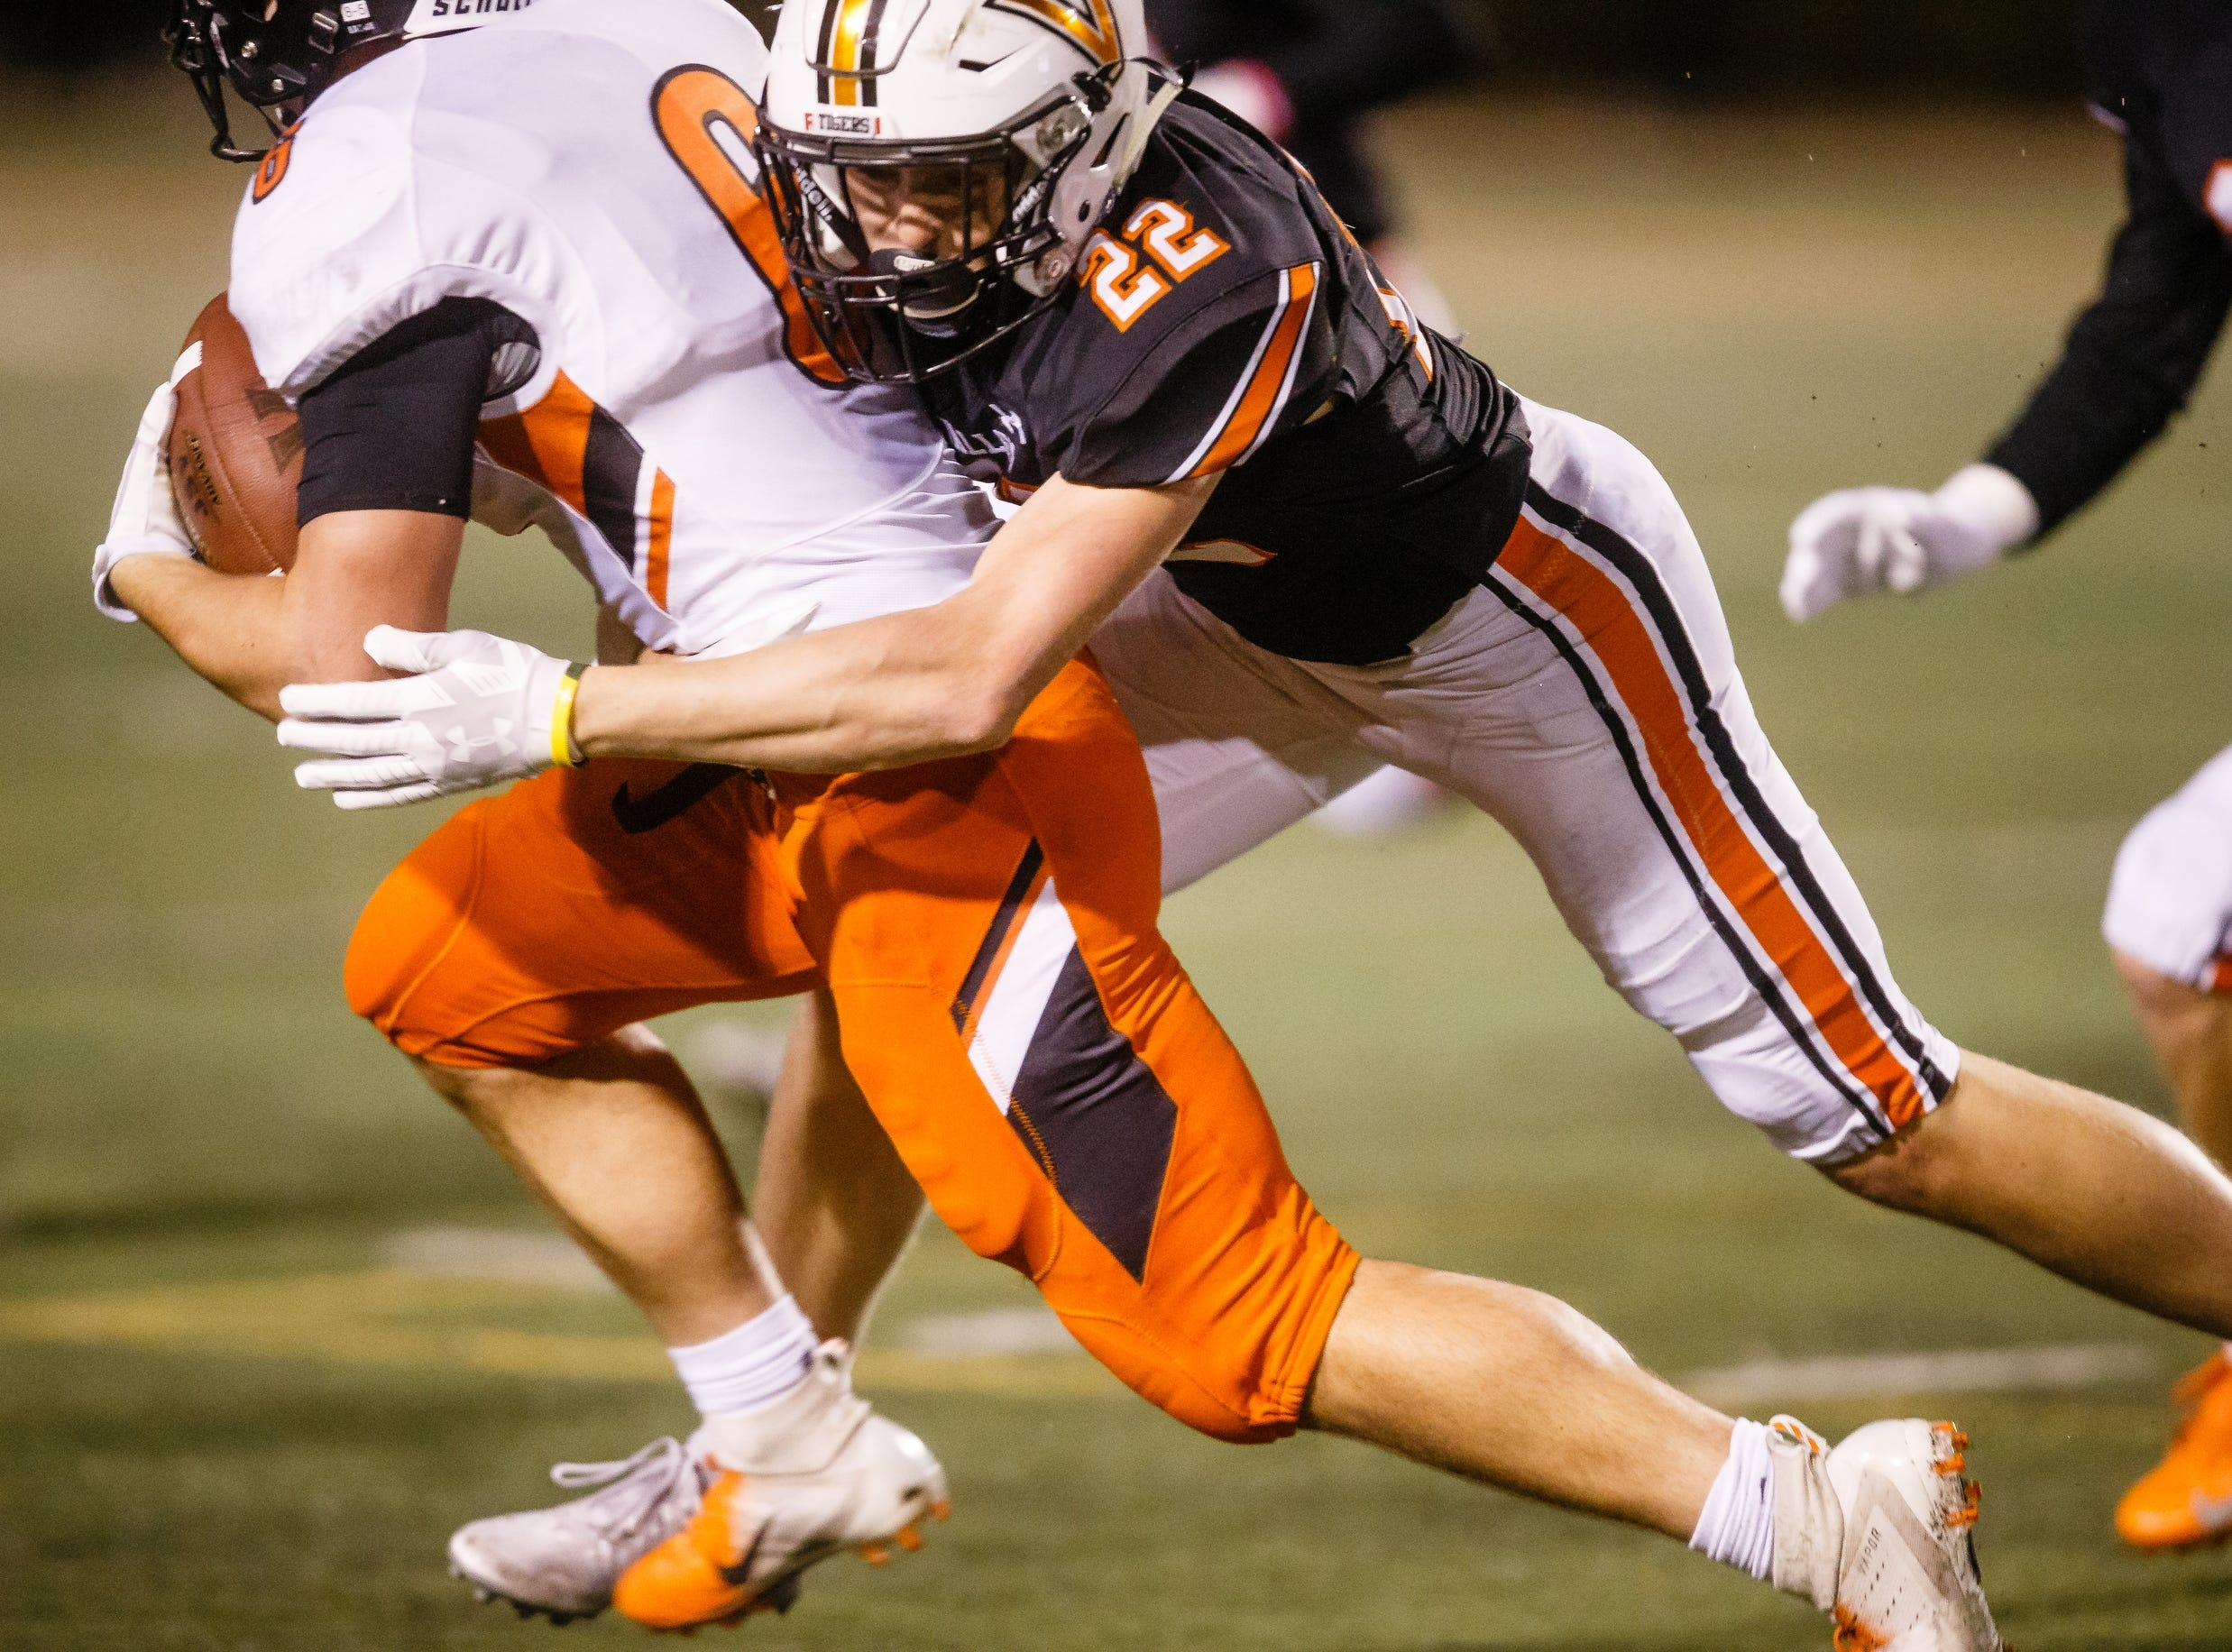 Valley's Jon Shaner (22) tackles Ames' Gabe Ante (6) during their football game at Valley Stadium on Friday, Oct. 12, 2018, in West Des Moines. Valley takes a 31-0 lead into halftime.